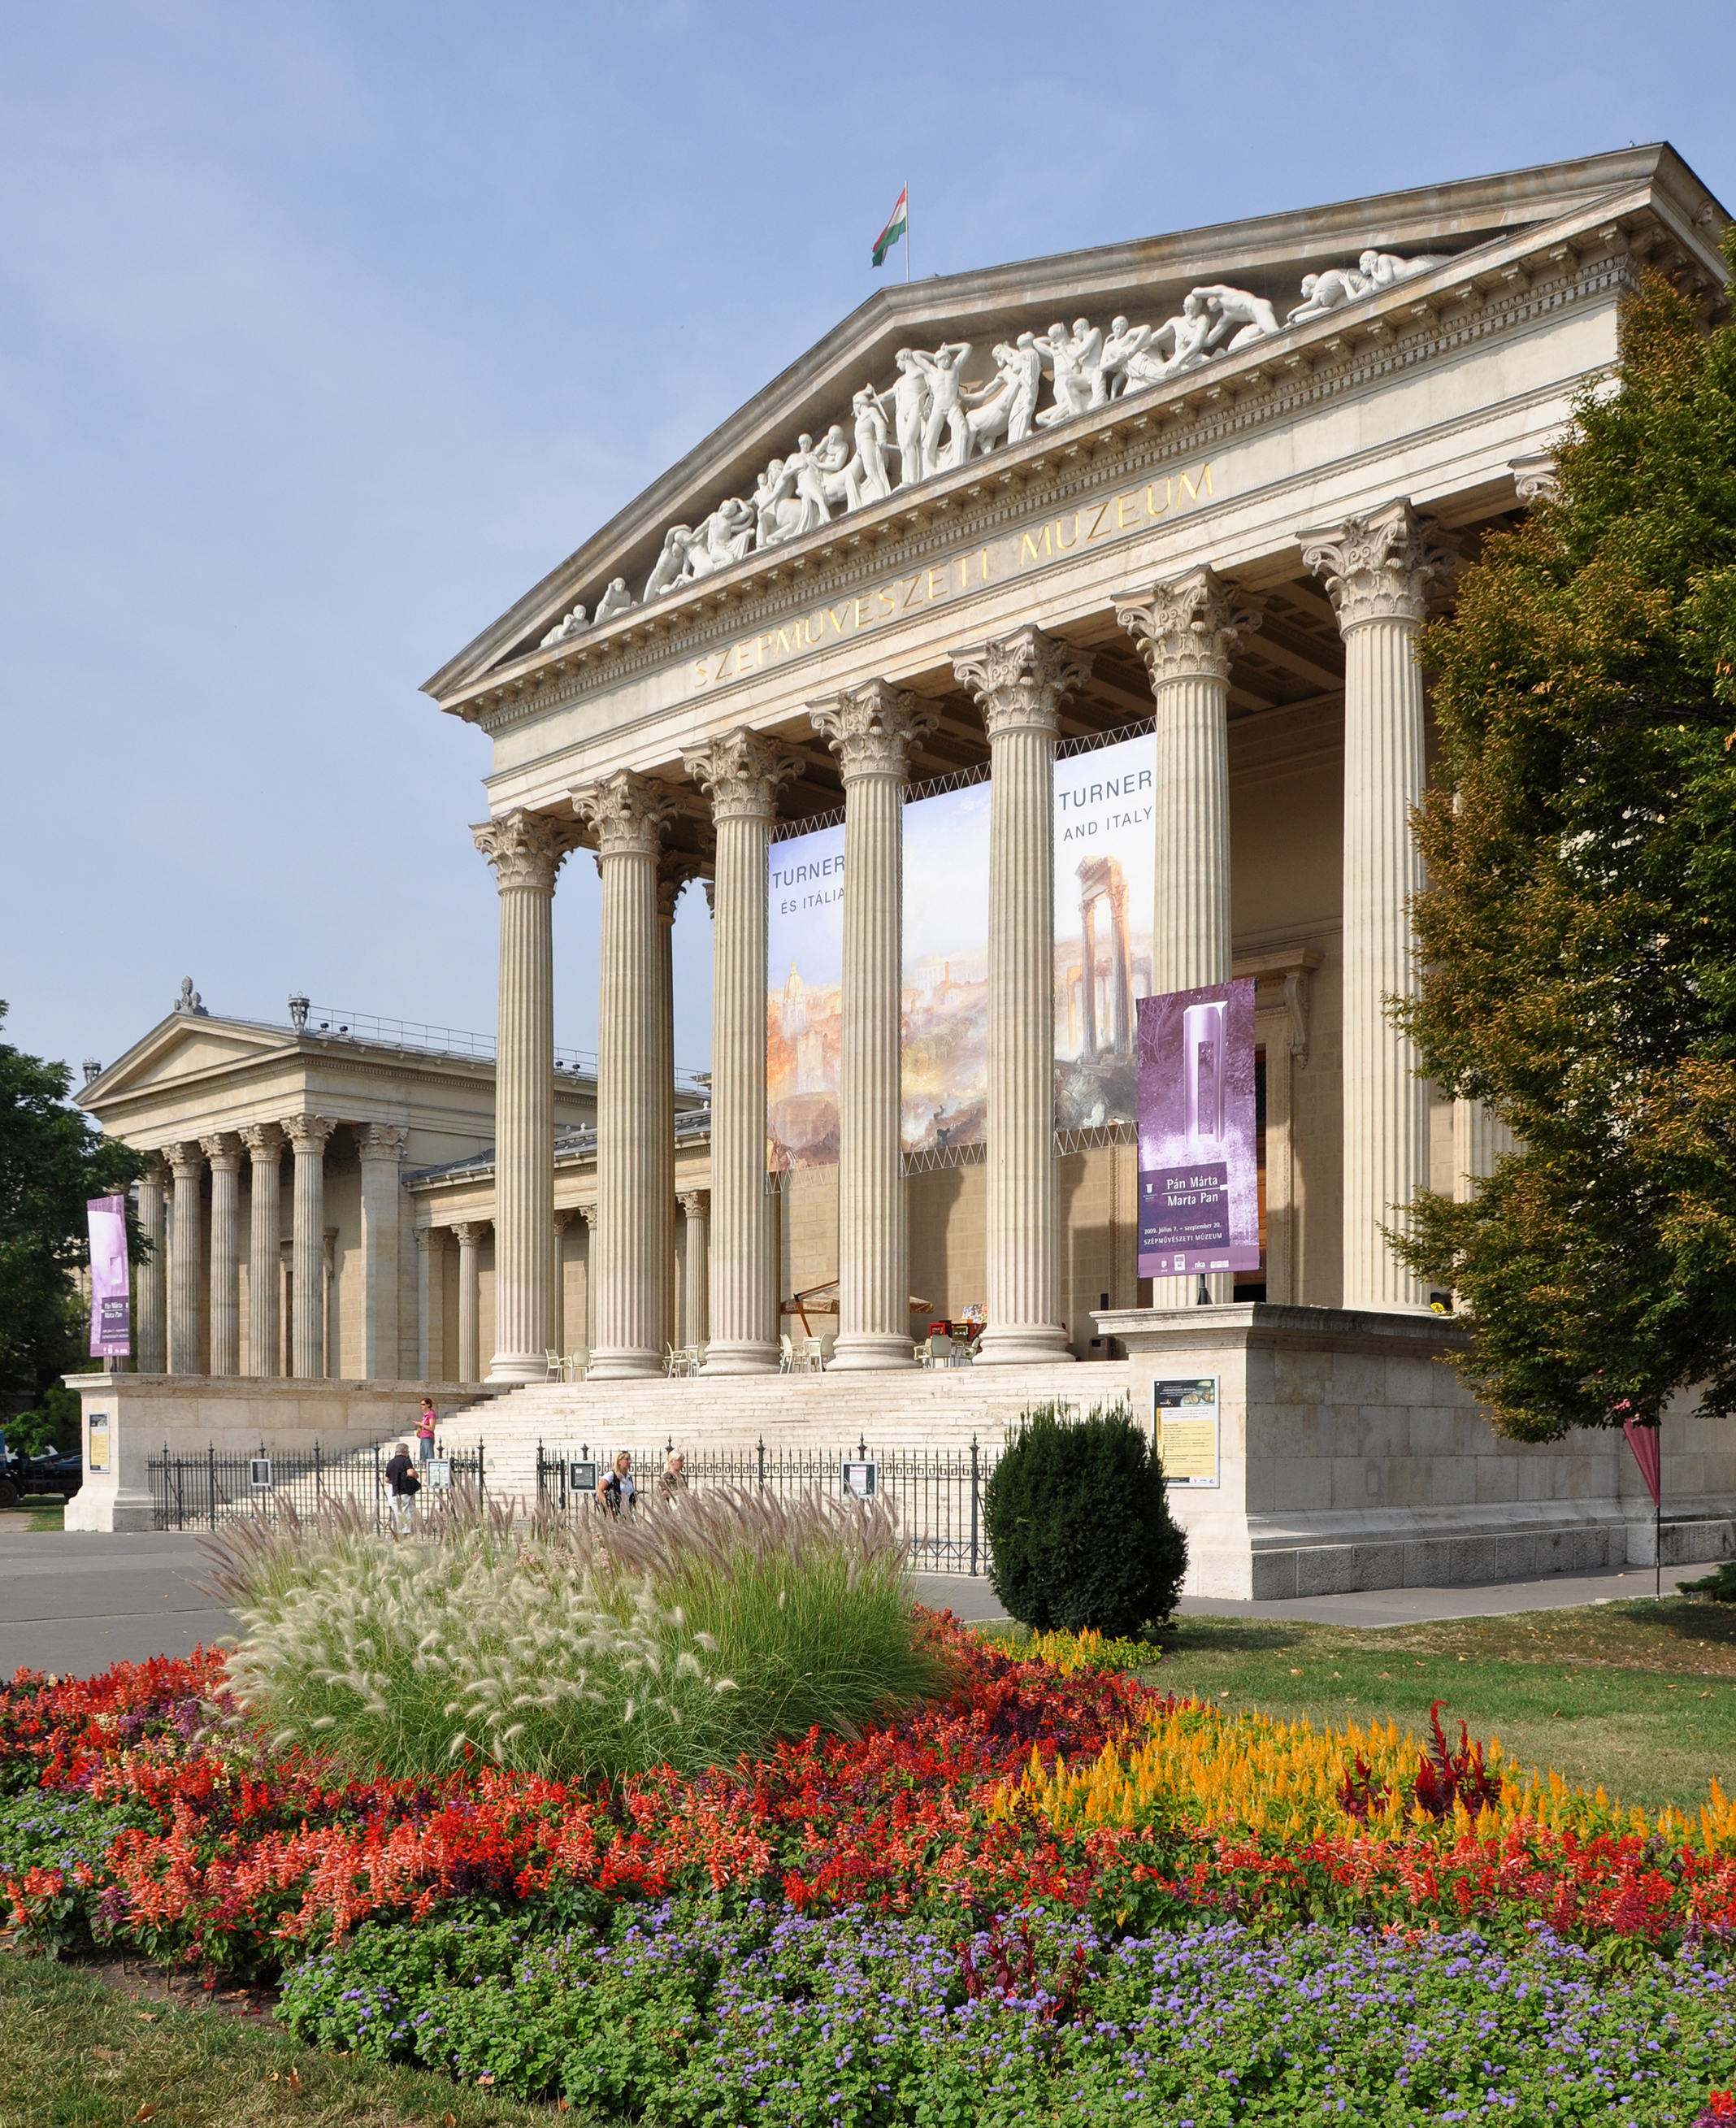 Discover Museums In Budapest For A Discount Price With MiniCards